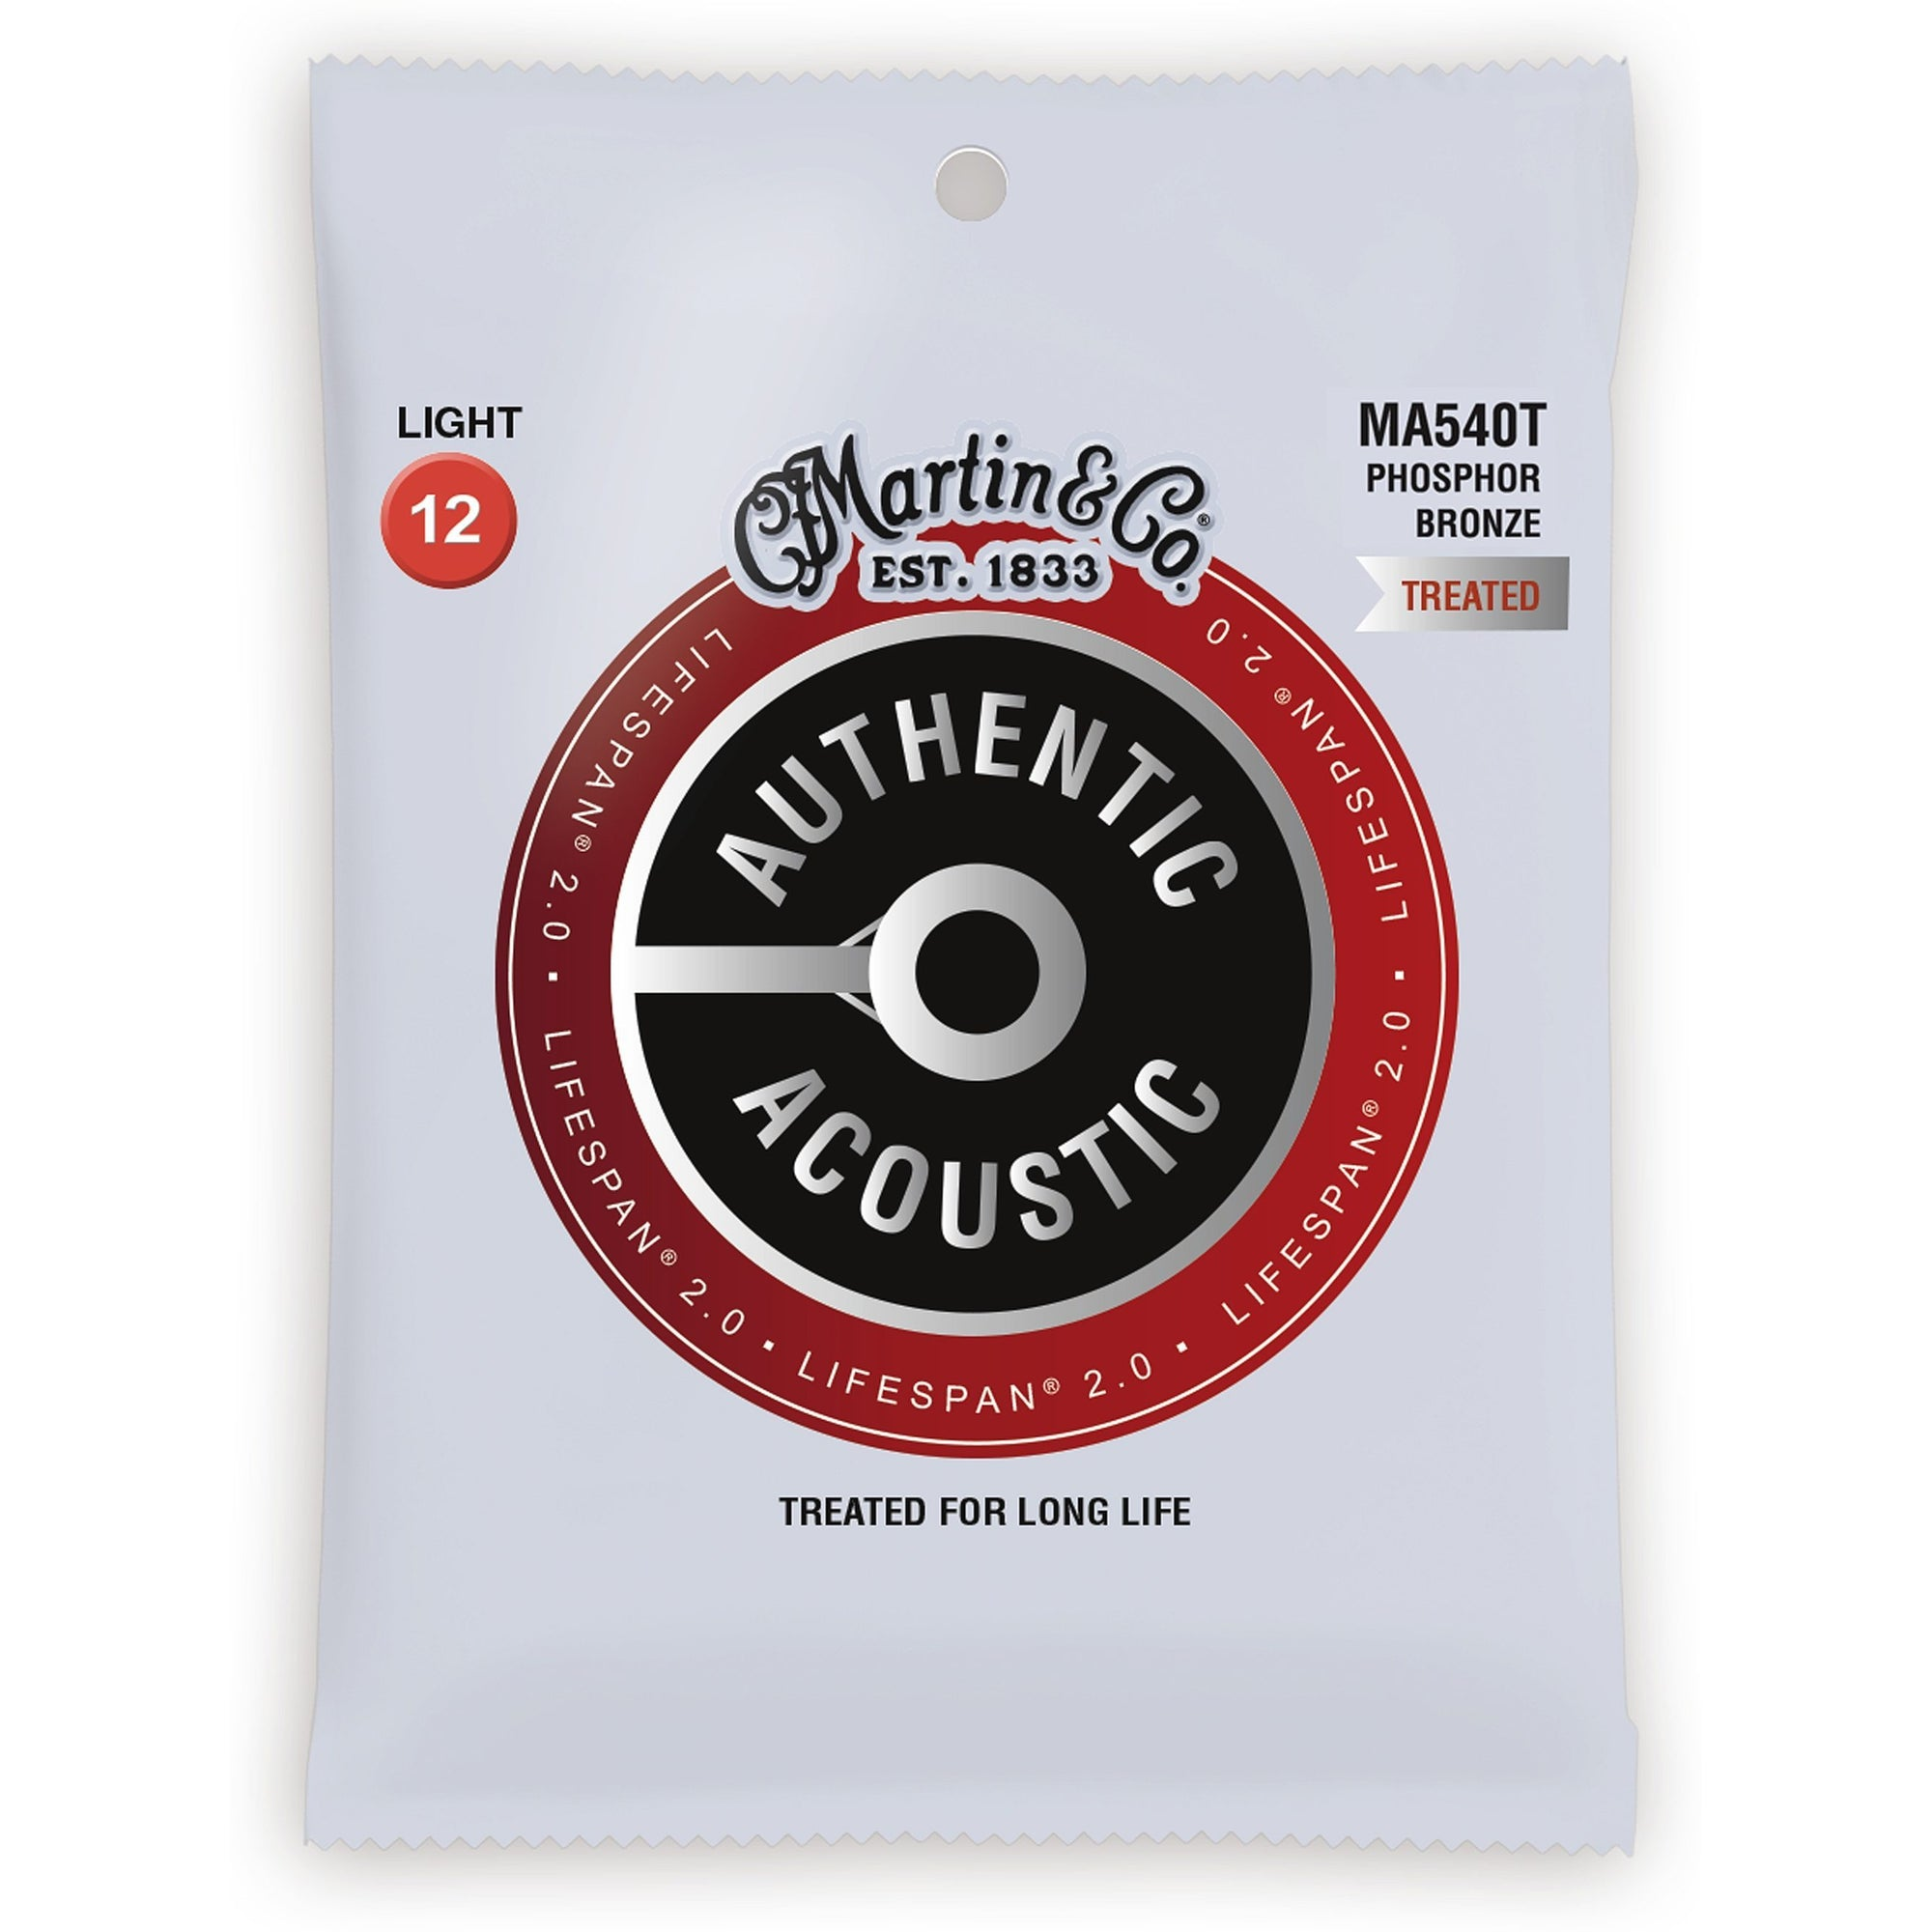 Martin Authentic Lifespan 2.0 Treated Phosphor Bronze Acoustic Guitar Strings, MA540T, Light